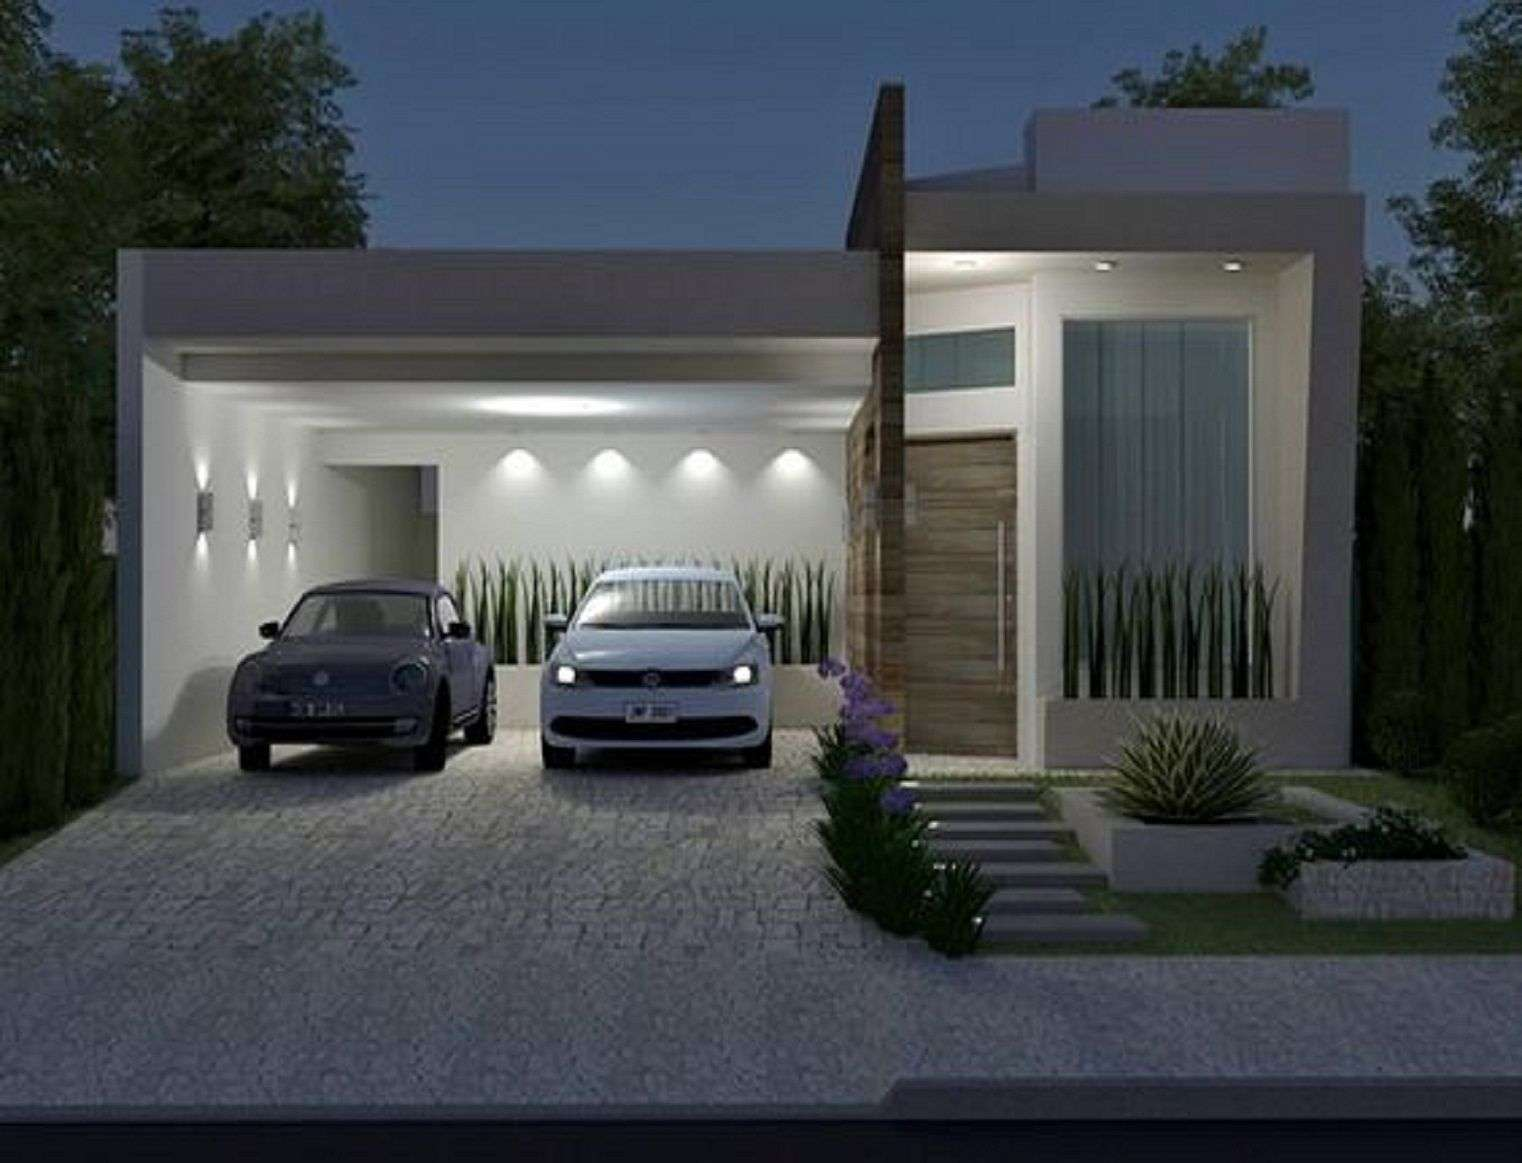 3. Minimalist Small house with Garage